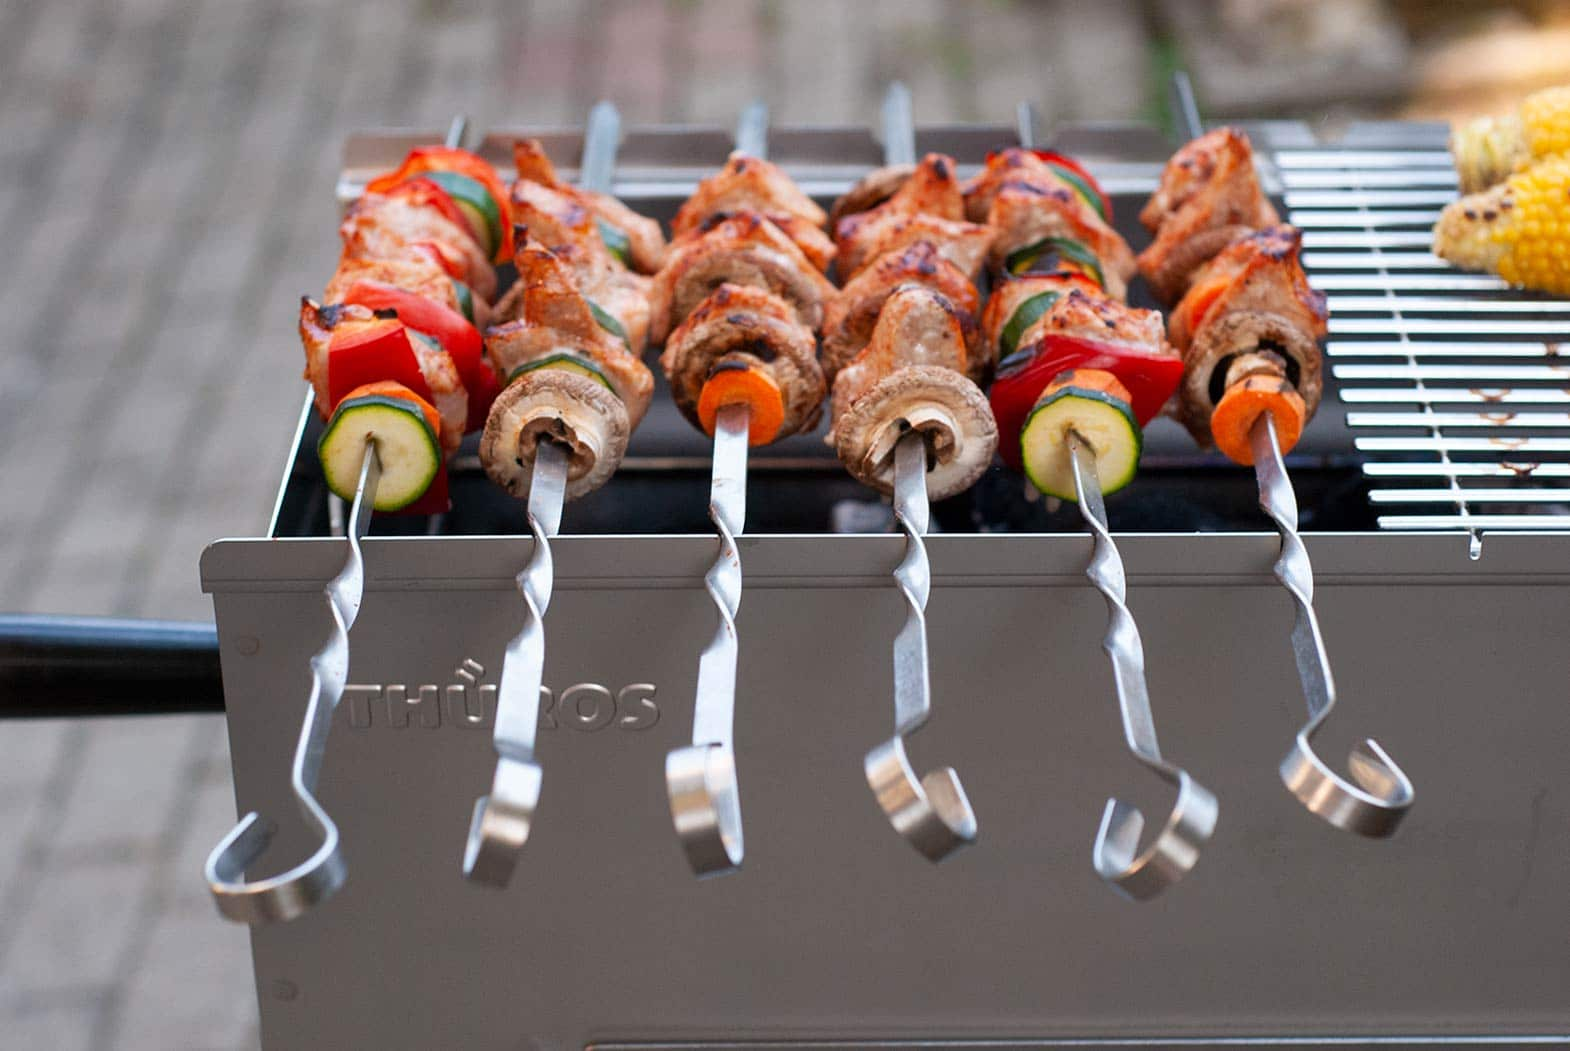 Meat and vegetable skewers on a grill